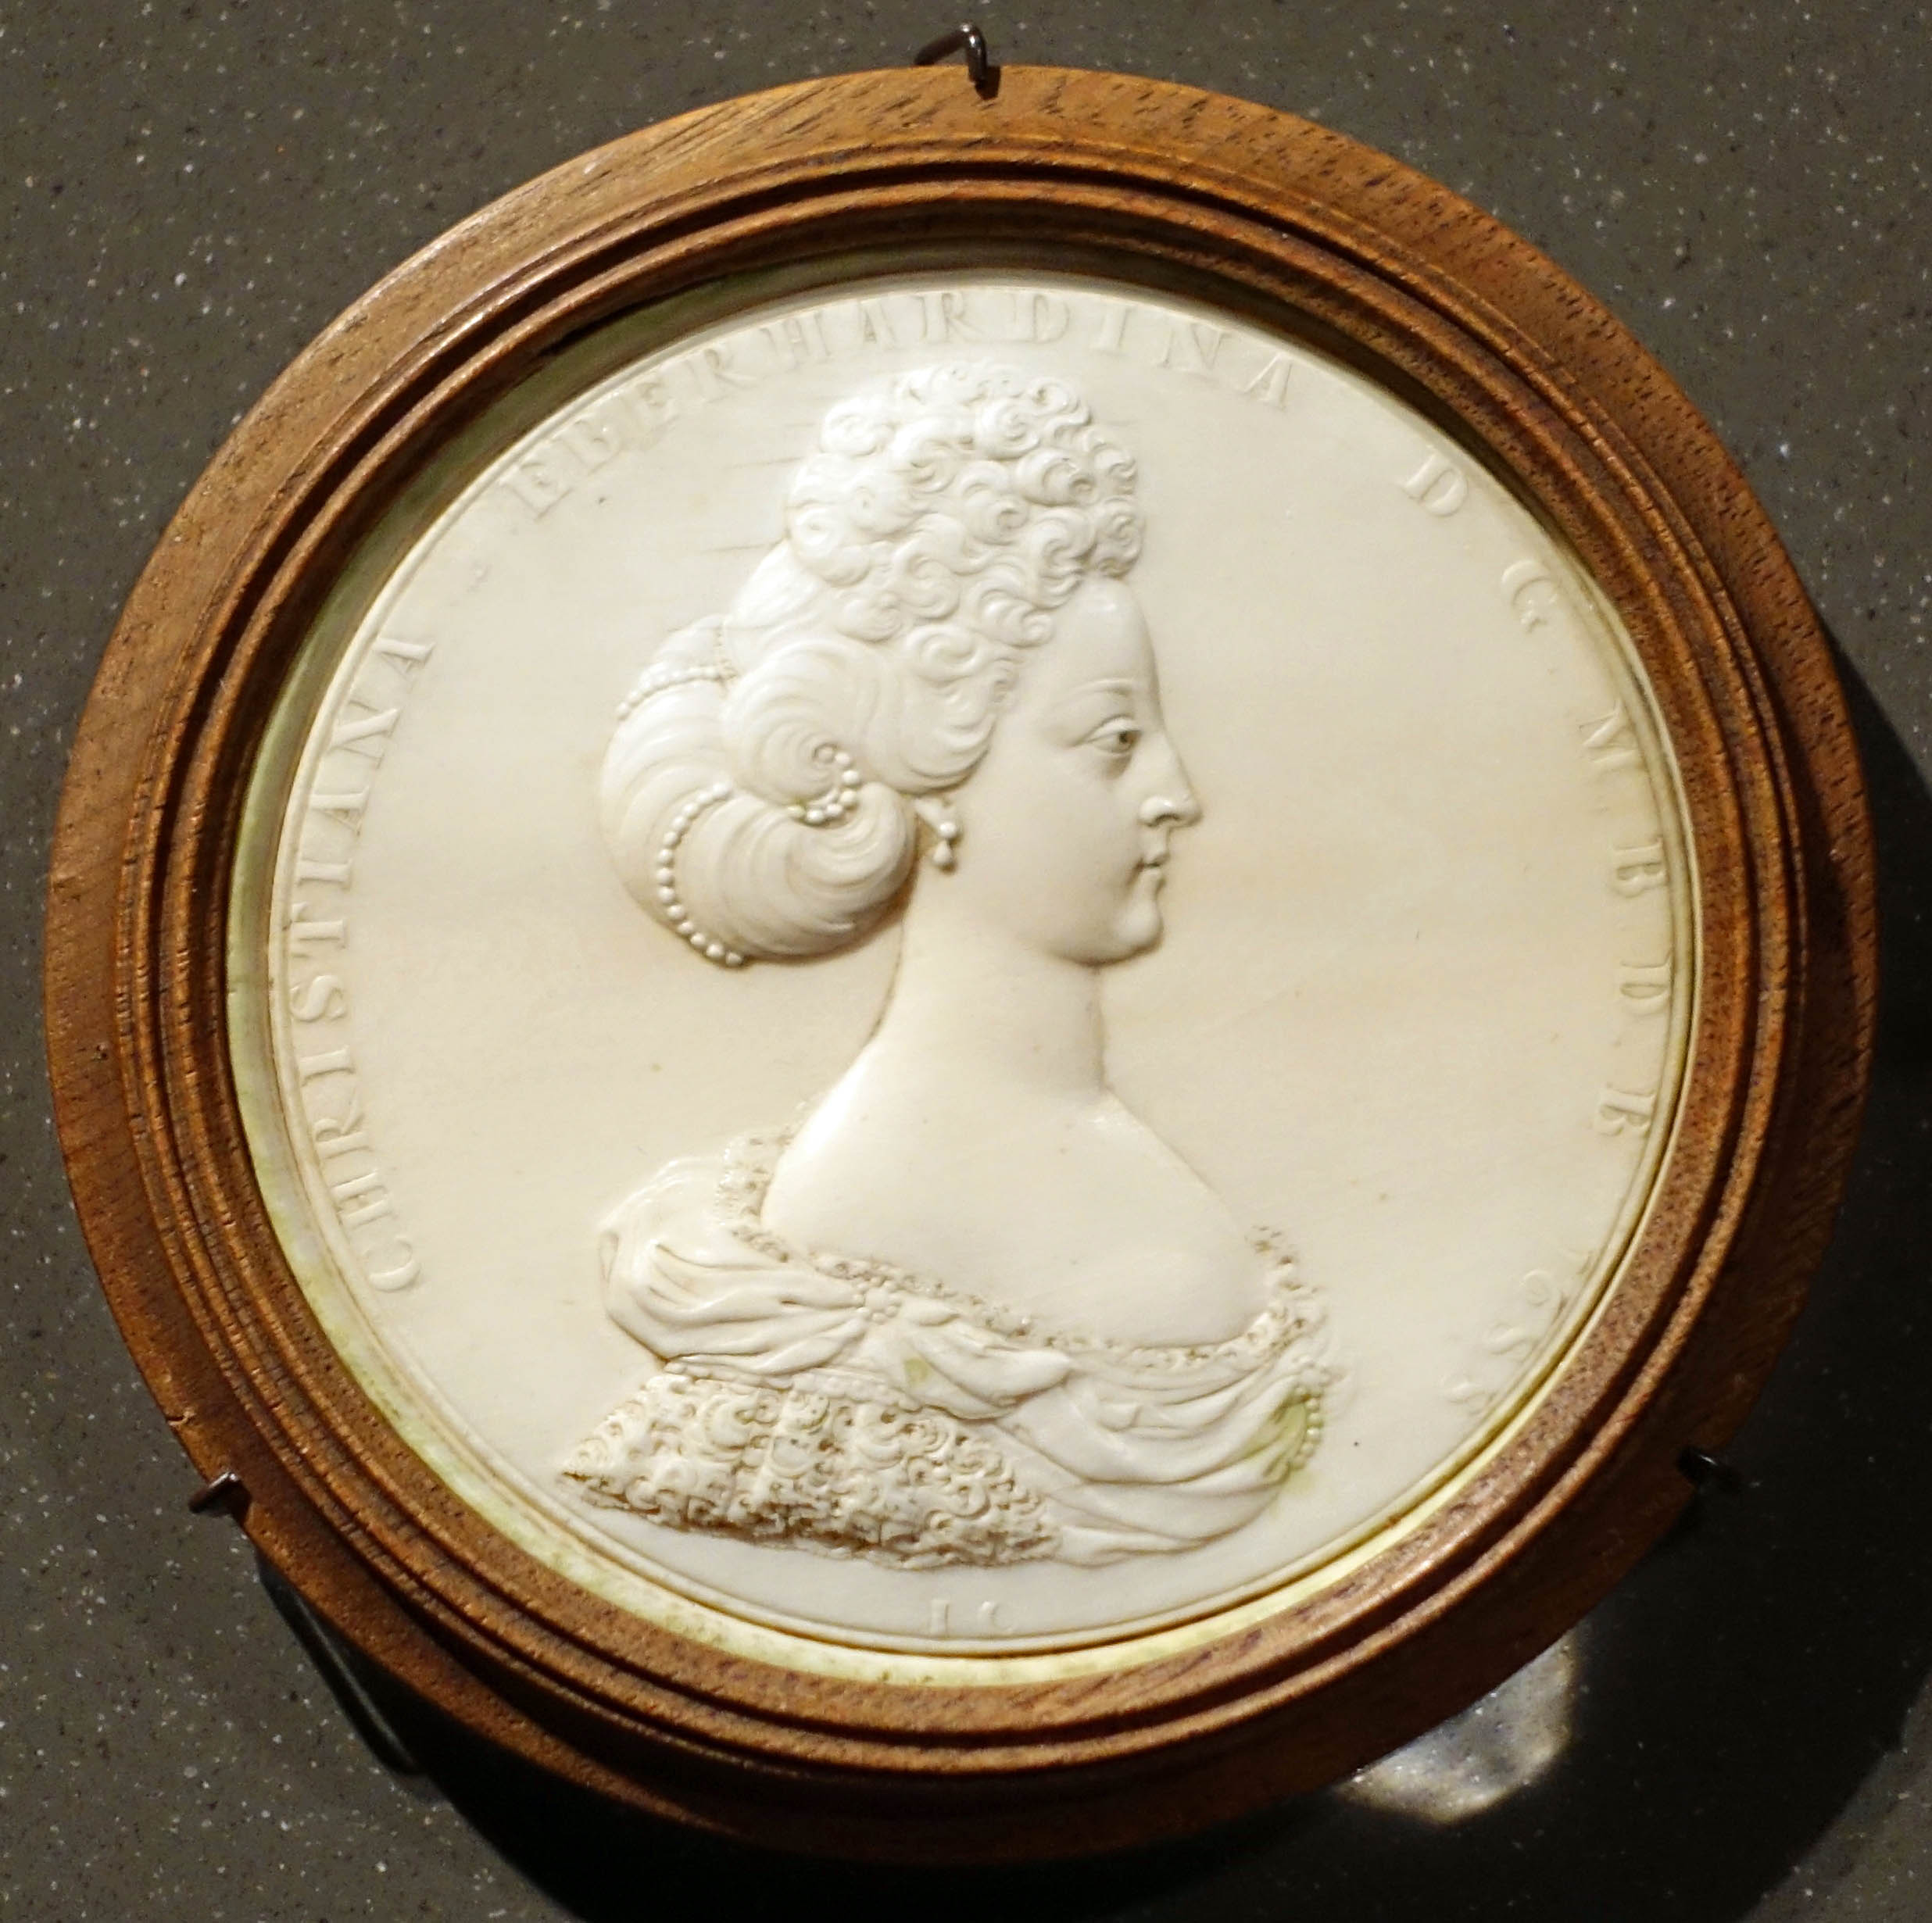 An ivory carving of Christiane Eberhardine of Brandenburg-Bayreuth (1671-1727) by Jean Cavalier, a French artist who worked on many European courts.